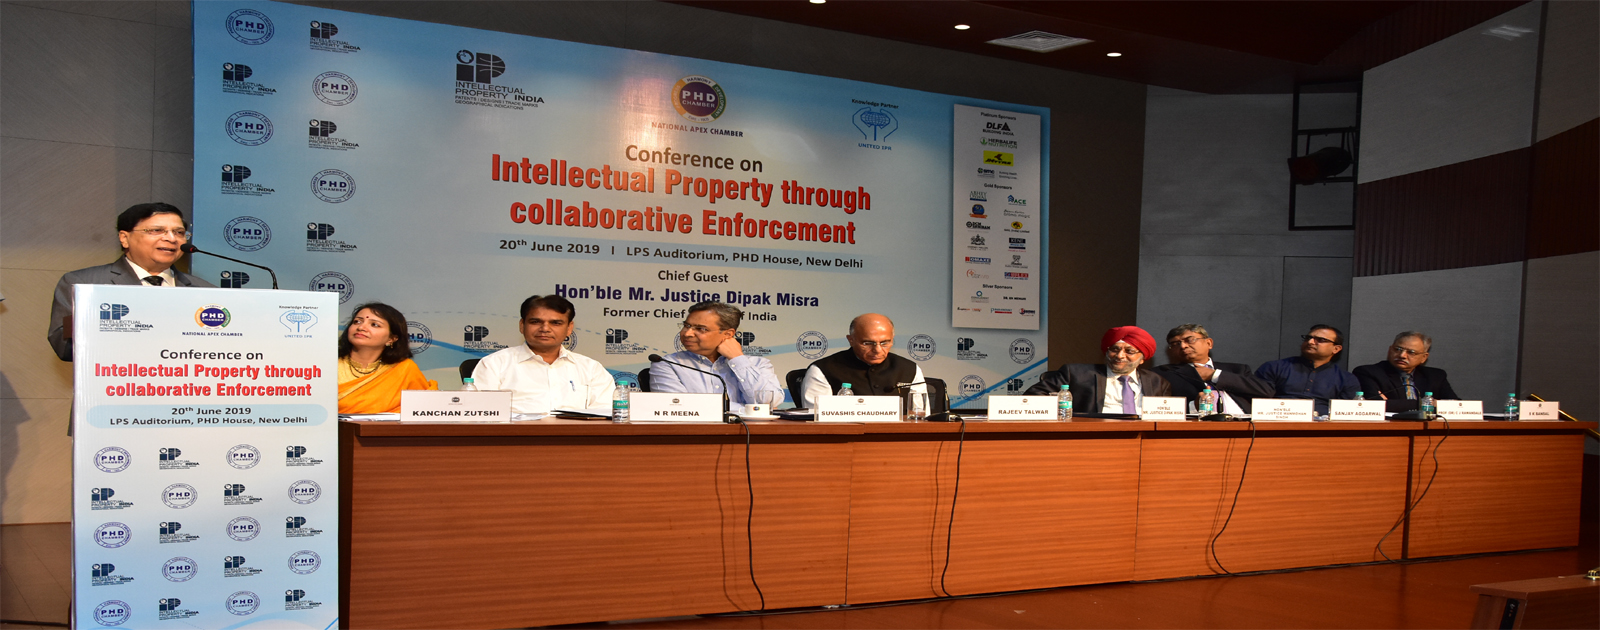 CONFERENCE ON INTELLECTUAL PROPERTY THROUGH COLLABORATIVE ENFORCEMENT